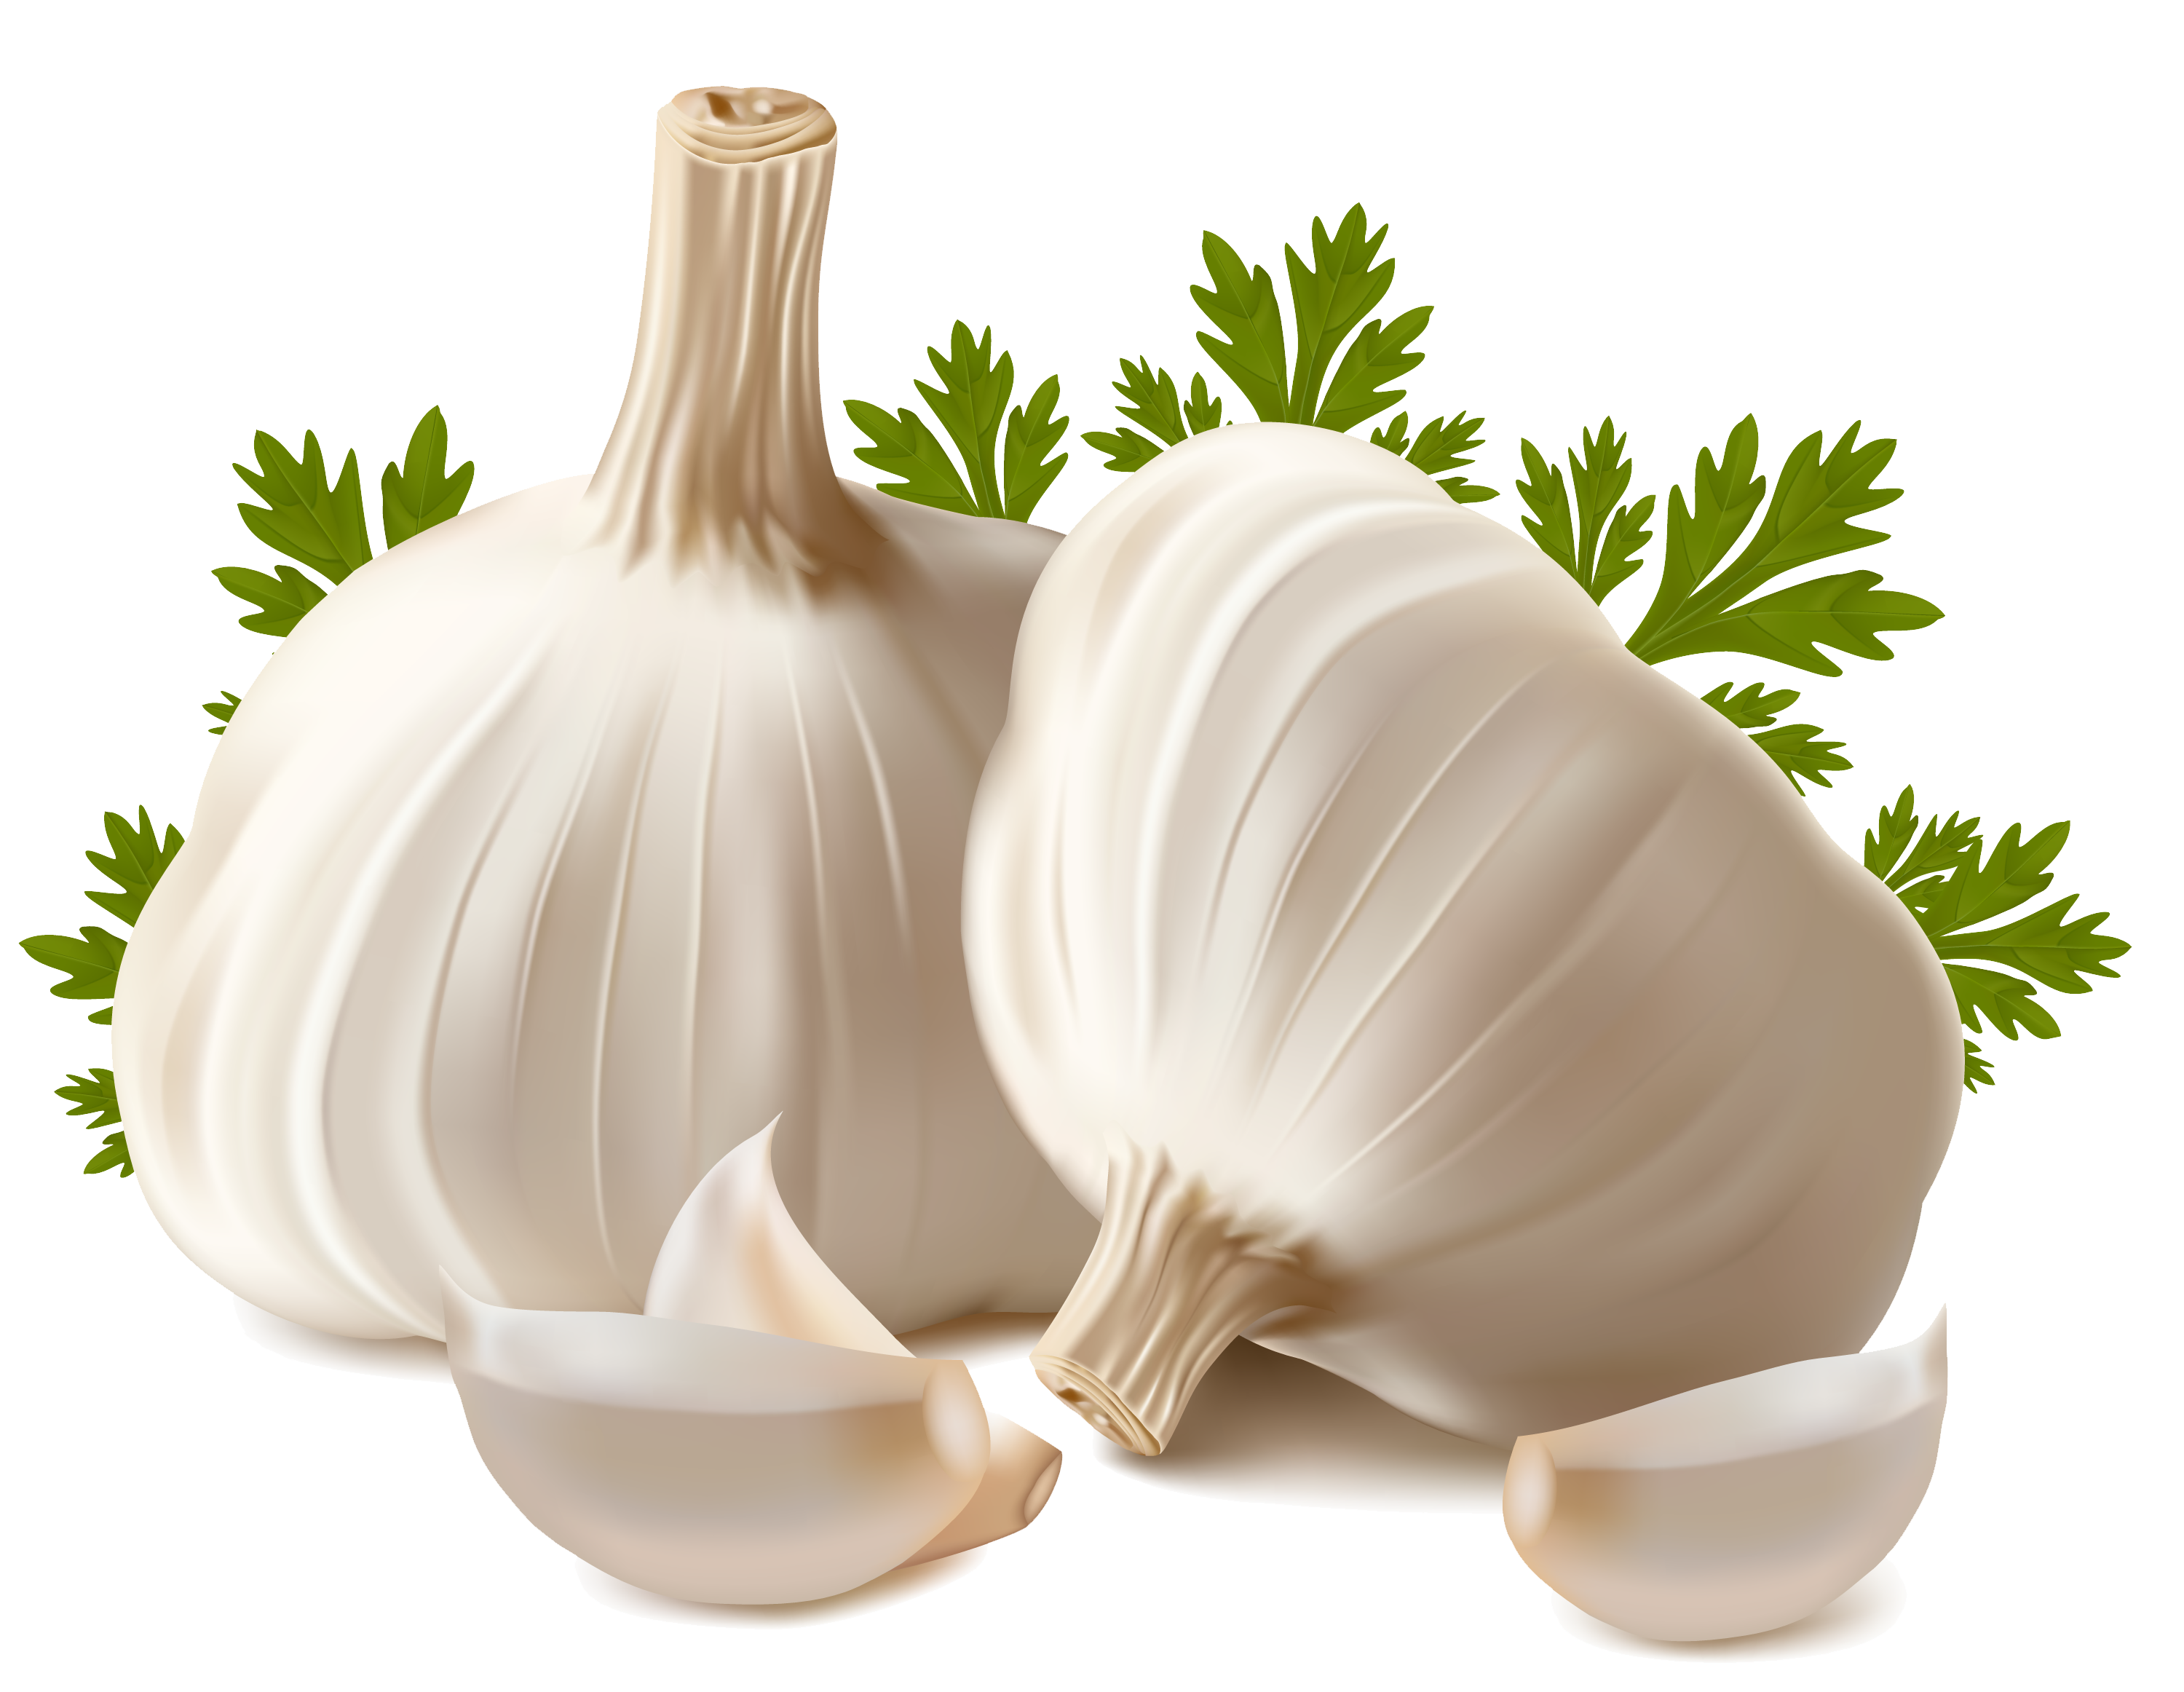 graphic royalty free Png mart. Garlic clipart